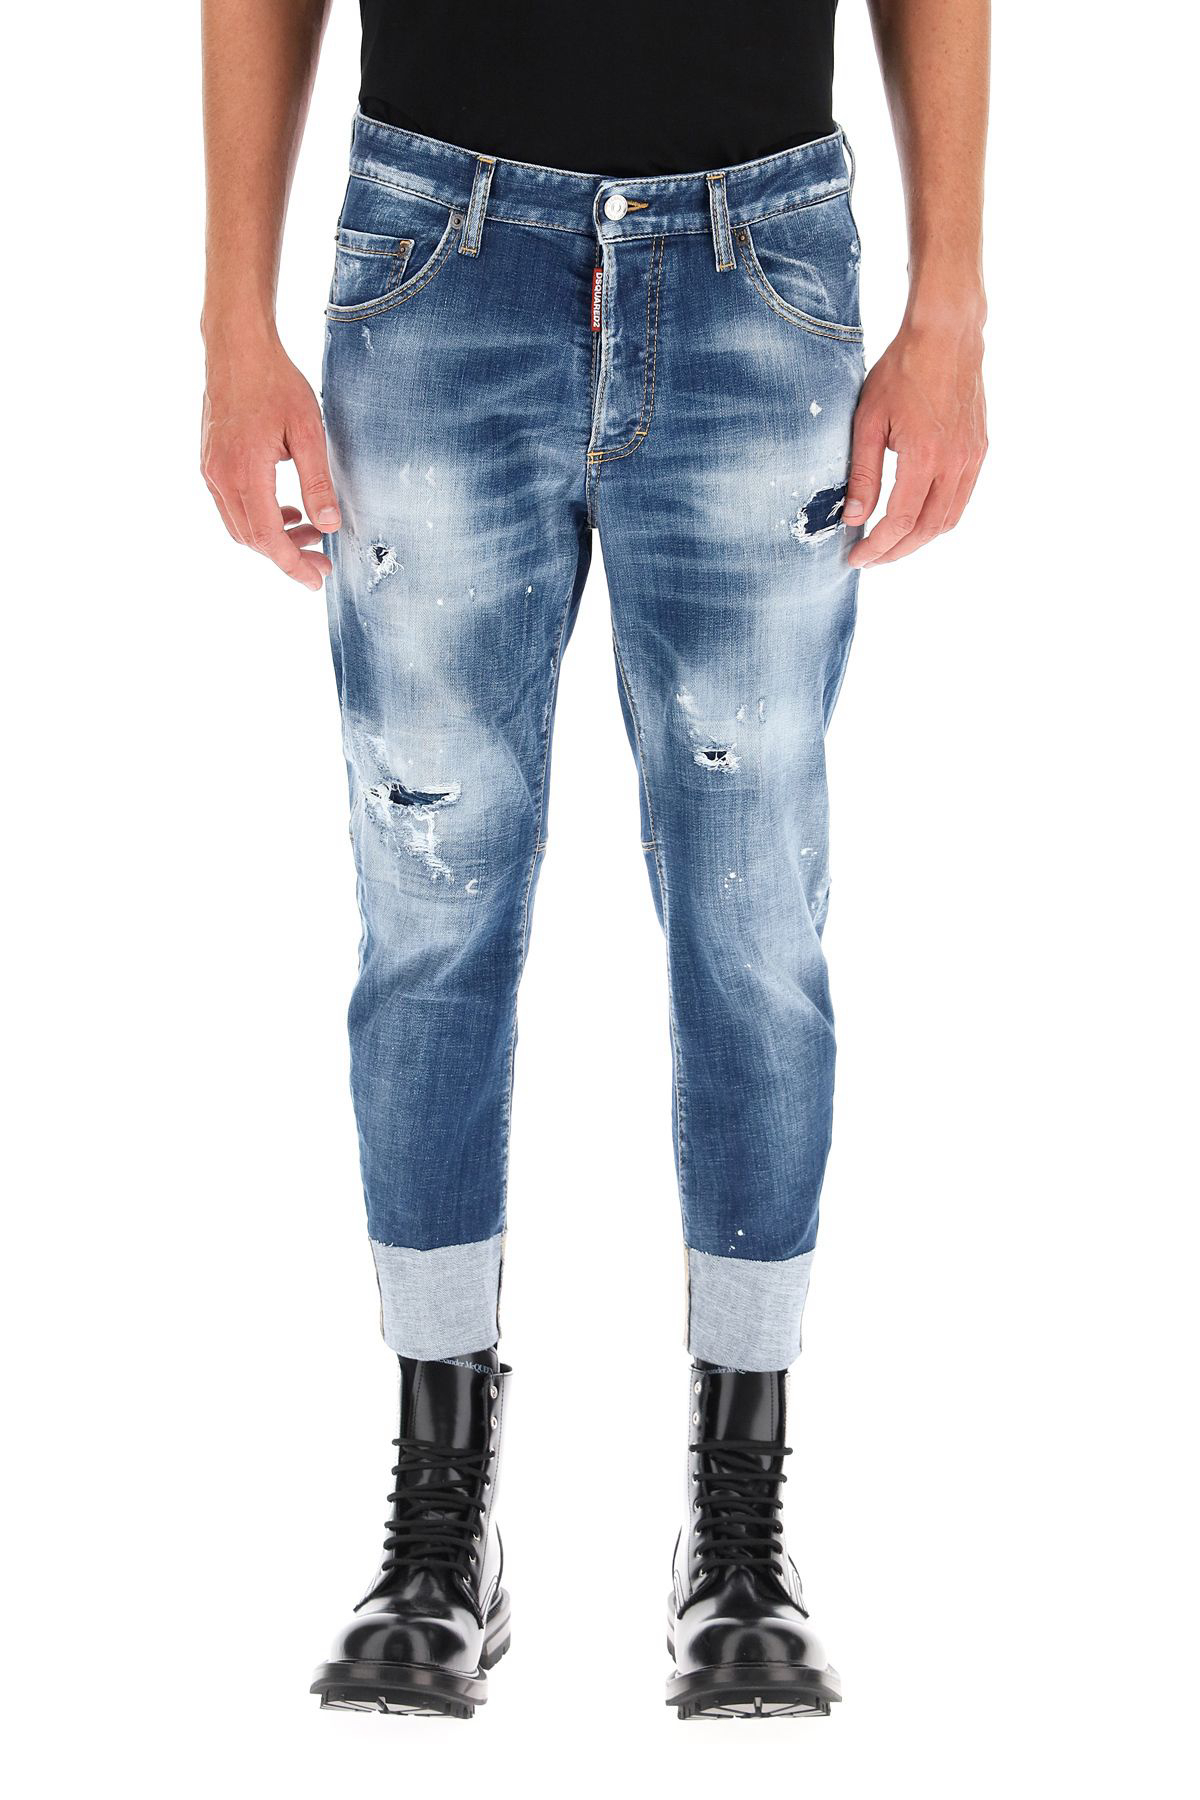 【DSQUARED2】★21秋冬SAILOR FIT JEANS (D SQUARED2/デニム・ジーパン) S74LB0955 S30342